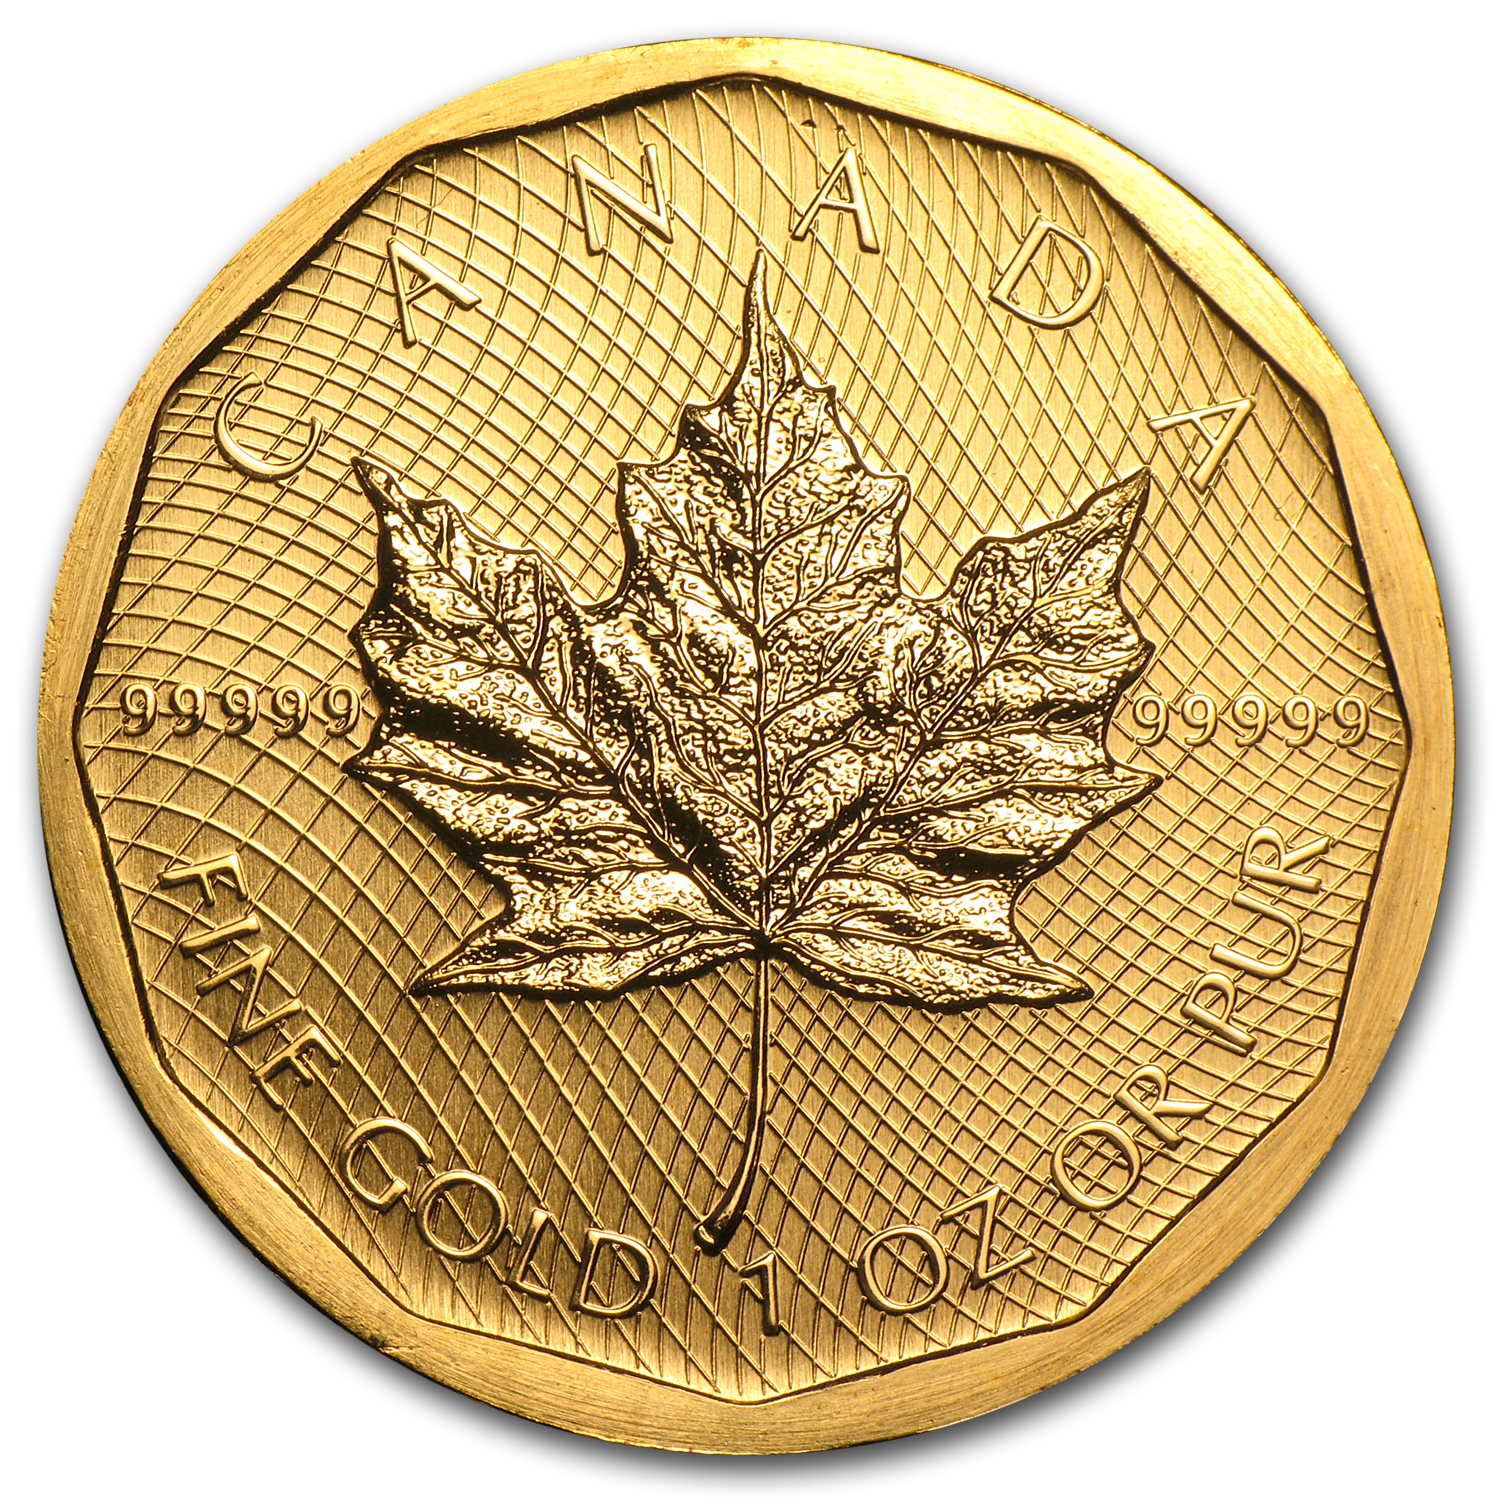 2009 Canada 1 oz Gold Maple Leaf .99999 BU (No Assay)